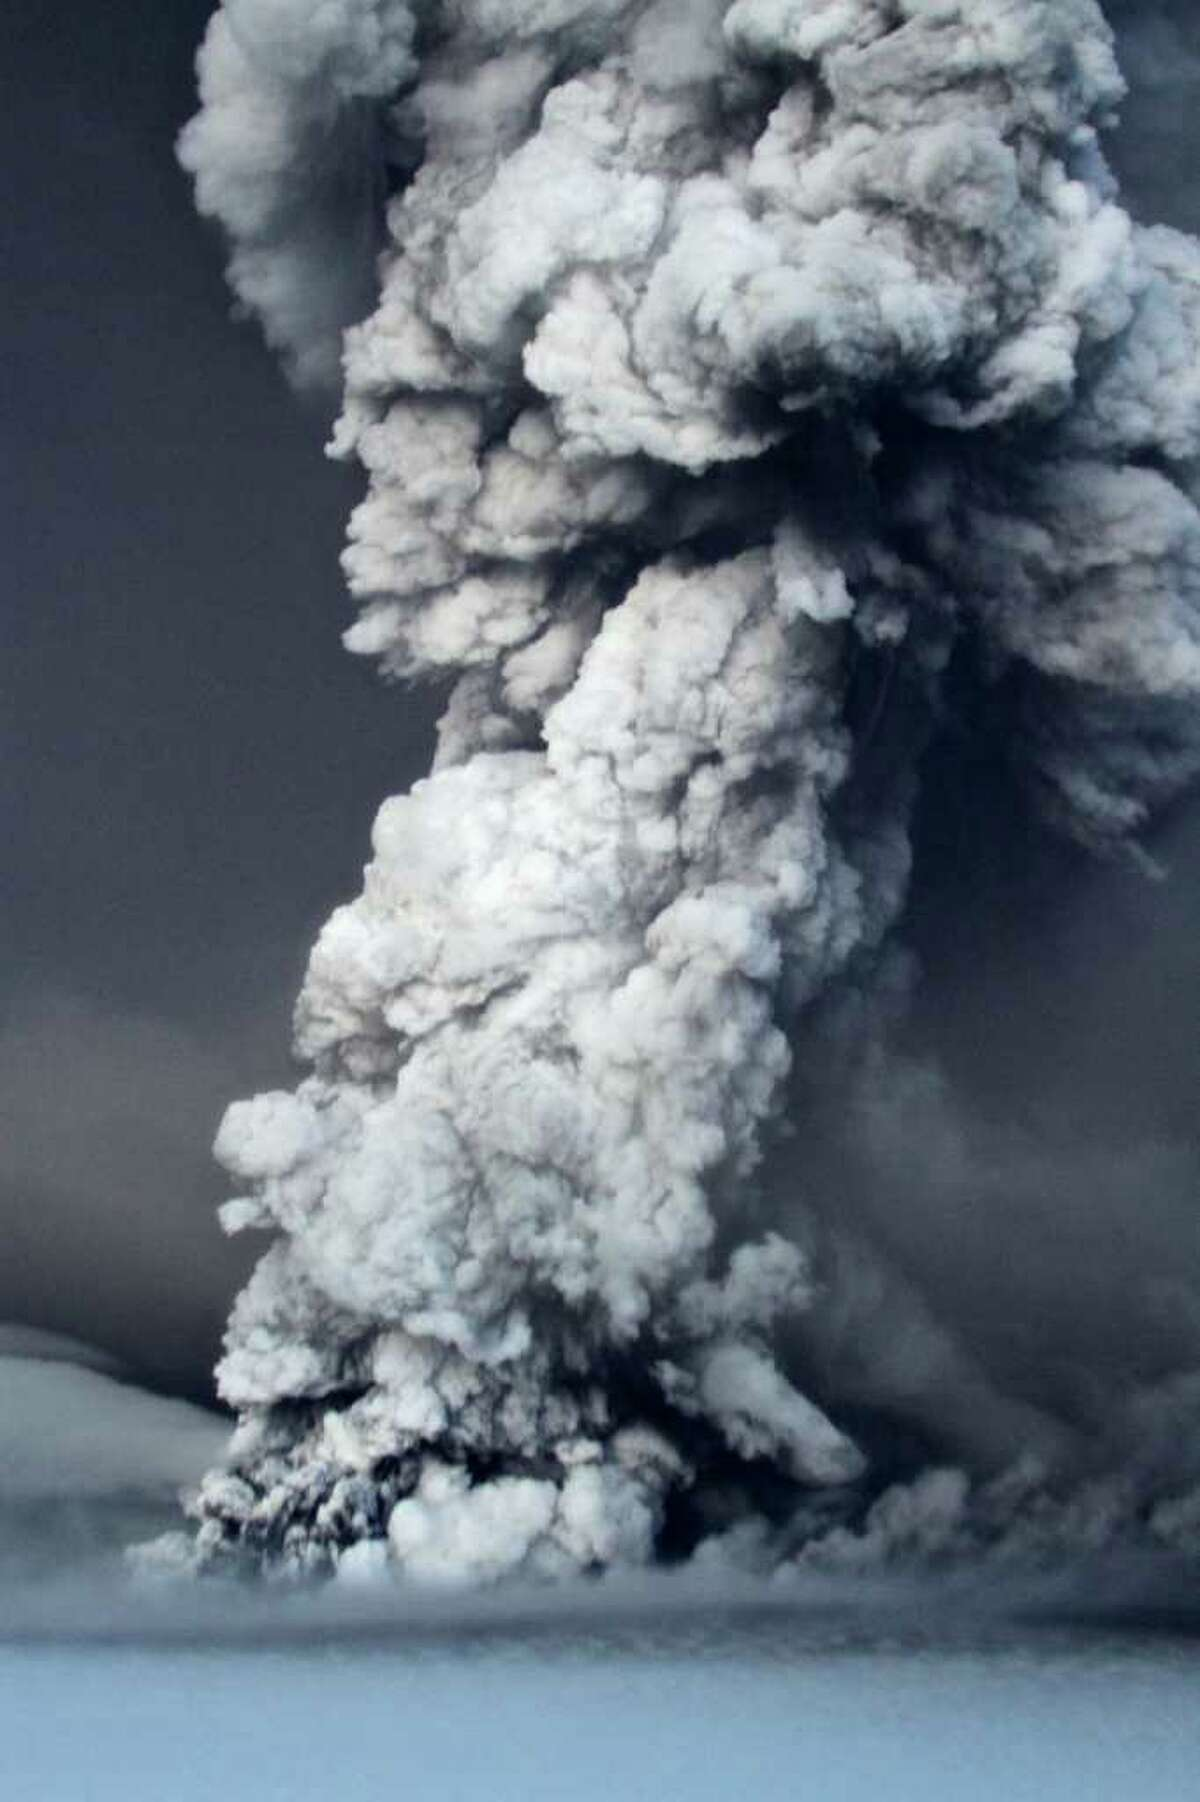 In this photo taken on Saturday, May 21, 2011, smoke plumes from the Grimsvotn volcano, which lies under the Vatnajokull glacier, about 120 miles, (200 kilometers) east of the capital, Rejkjavik, which began erupting Saturday for the first time since 2004. Iceland closed its main international airport and canceled domestic flights Sunday as a powerful volcanic eruption sent a plume of ash, smoke and steam 12 miles (20 kilometers) into the air. (AP Photo, Jon Gustafsson) ICELAND OUT